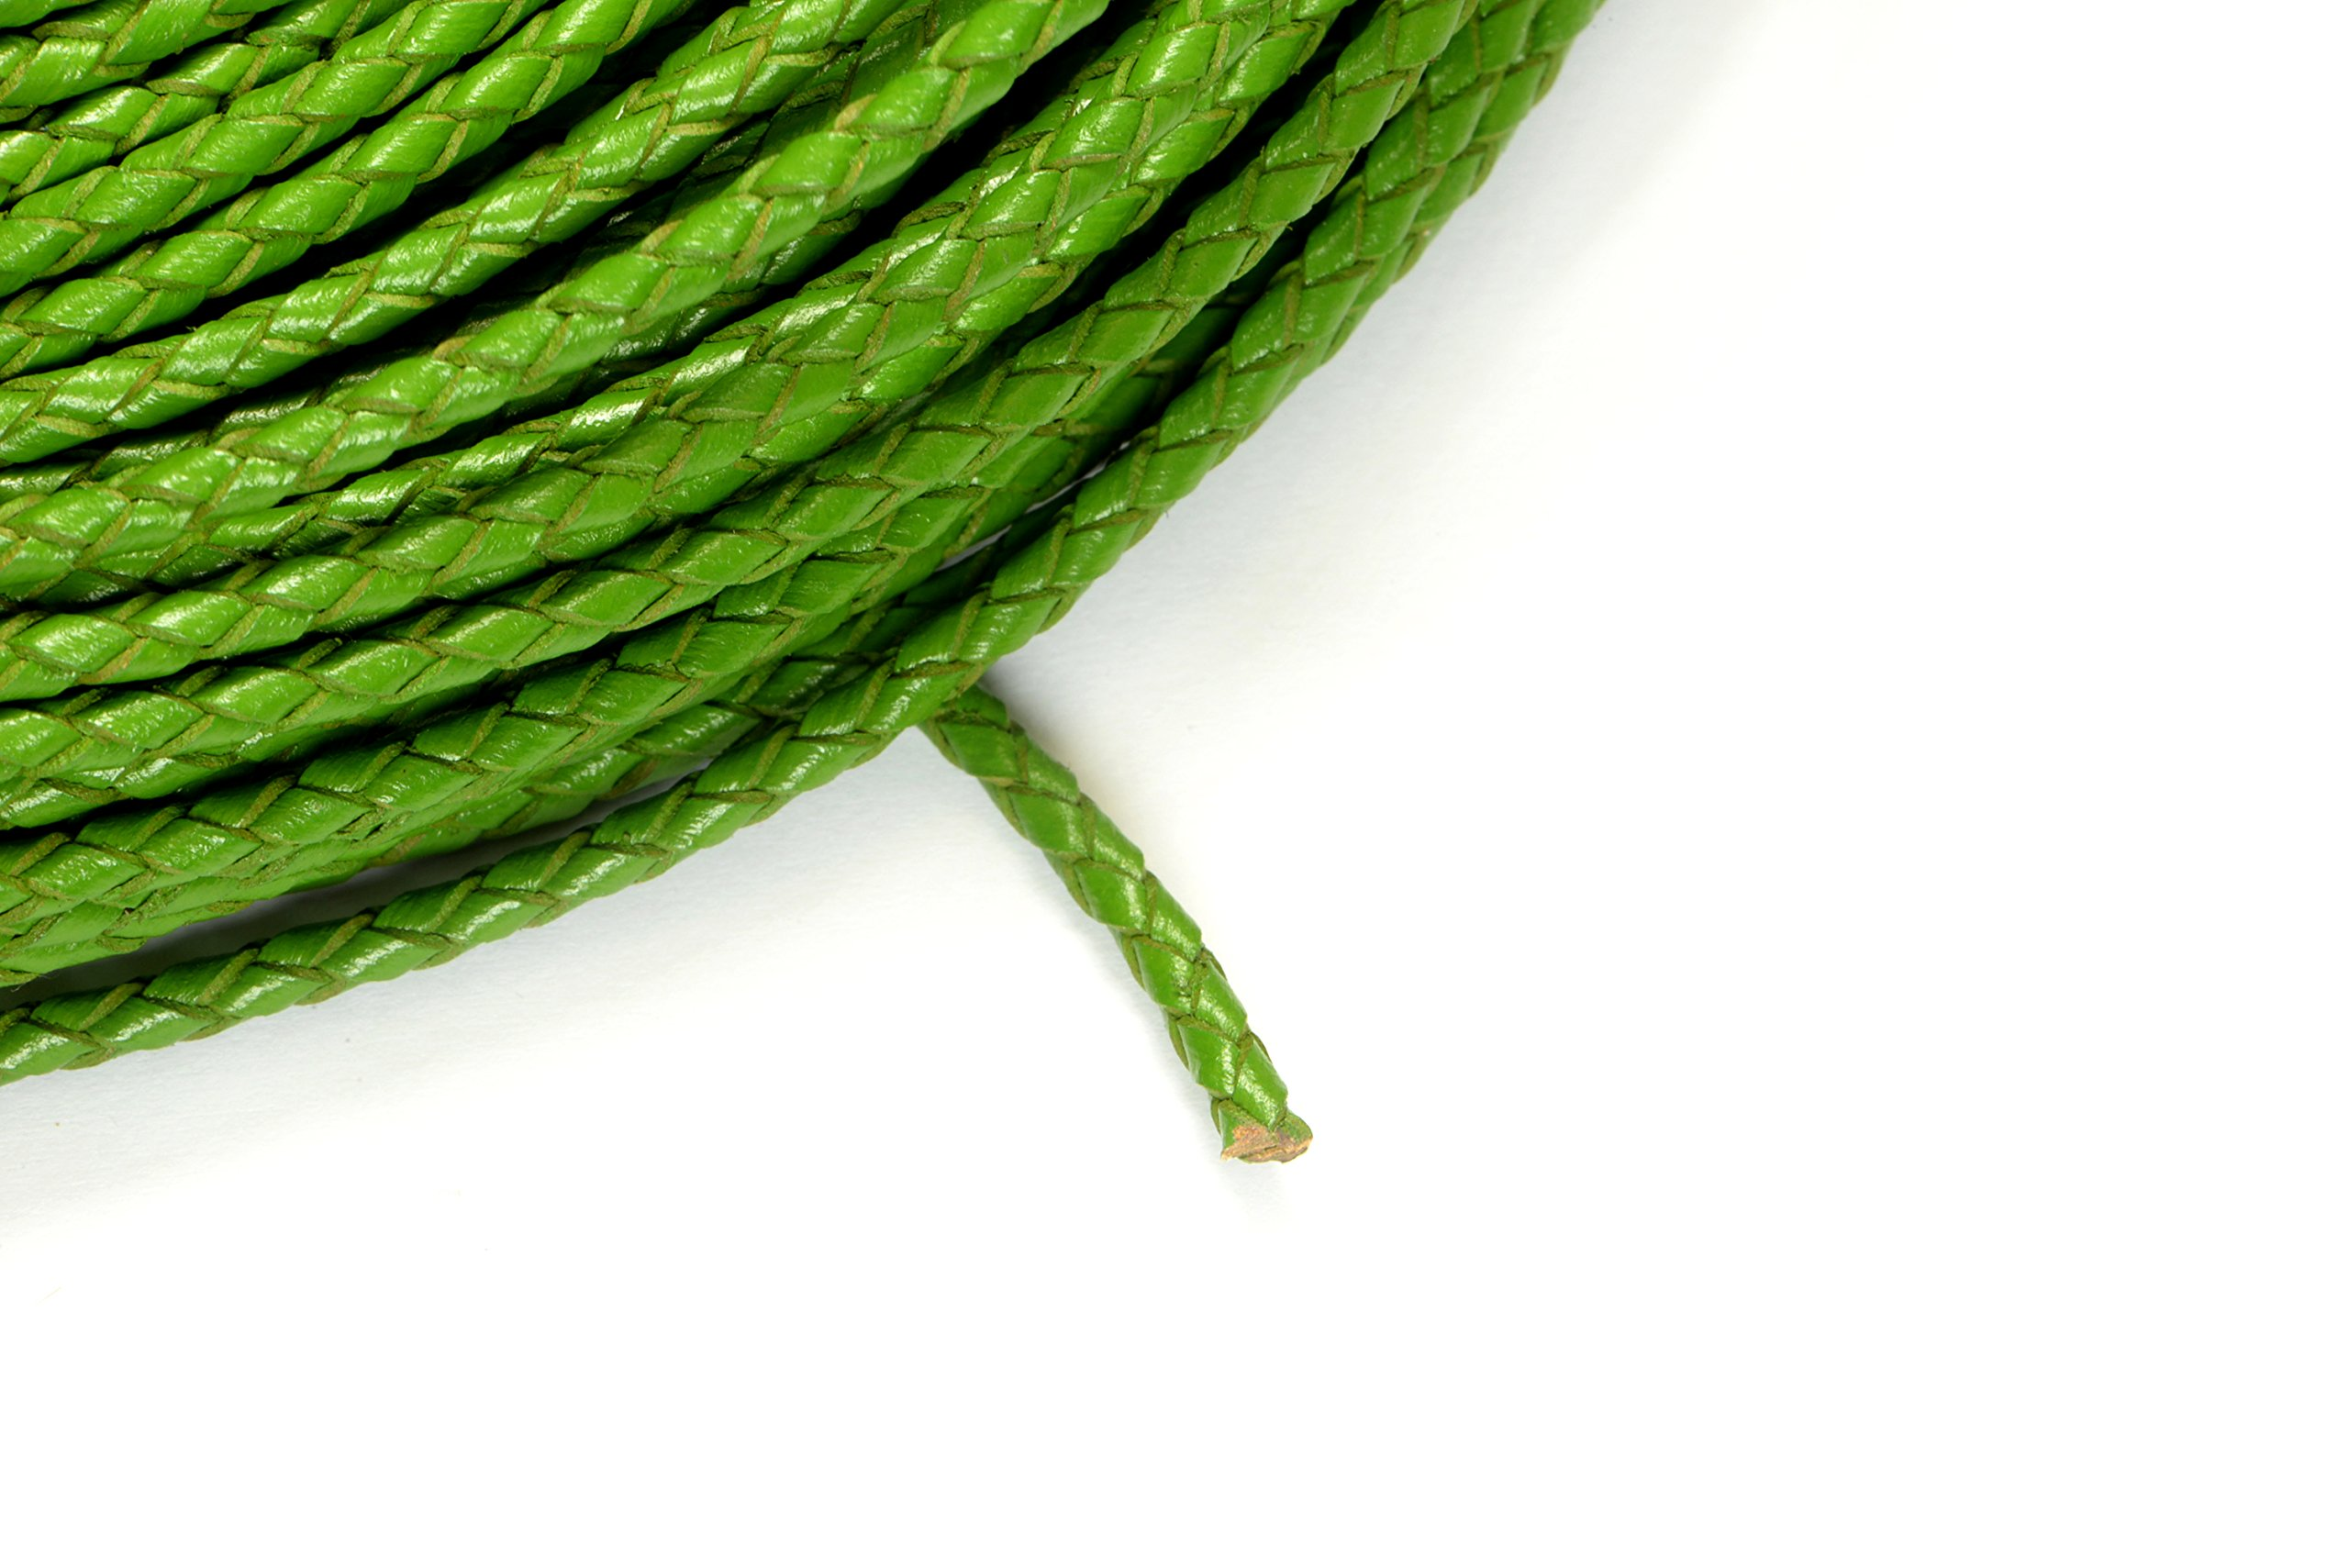 8ft (2.43m) (2.66 yards) 3mm Braided Leather Bolo Cord in Green, Round Genuine Leather Cord, Twisted Cord #SD-S7796